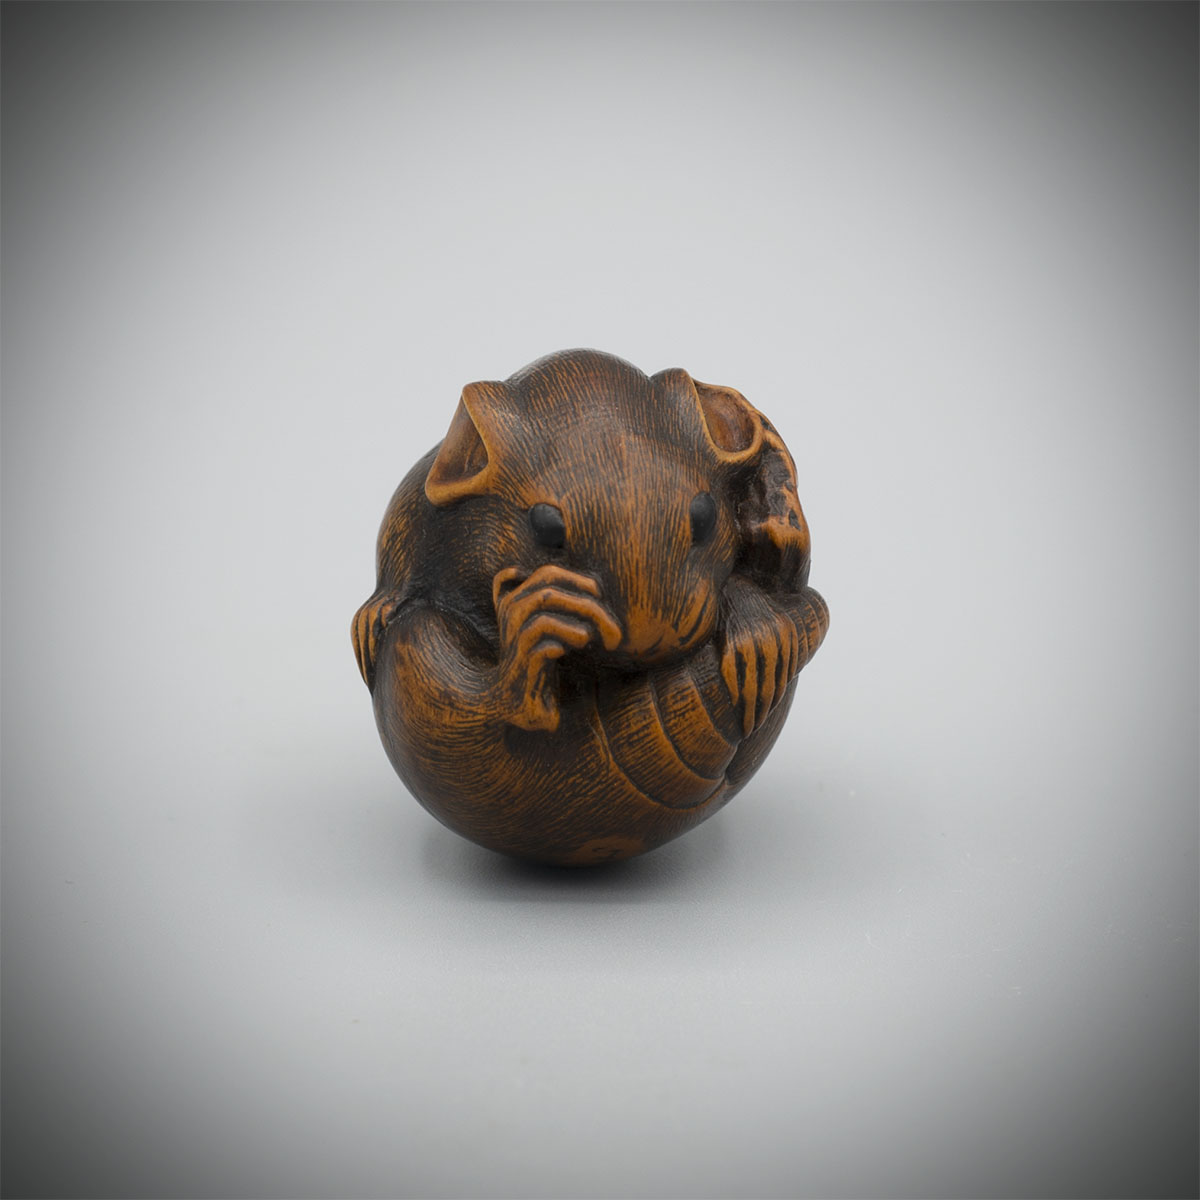 Wood Netsuke of a Balled Rat by Masatada,MR3380_v1